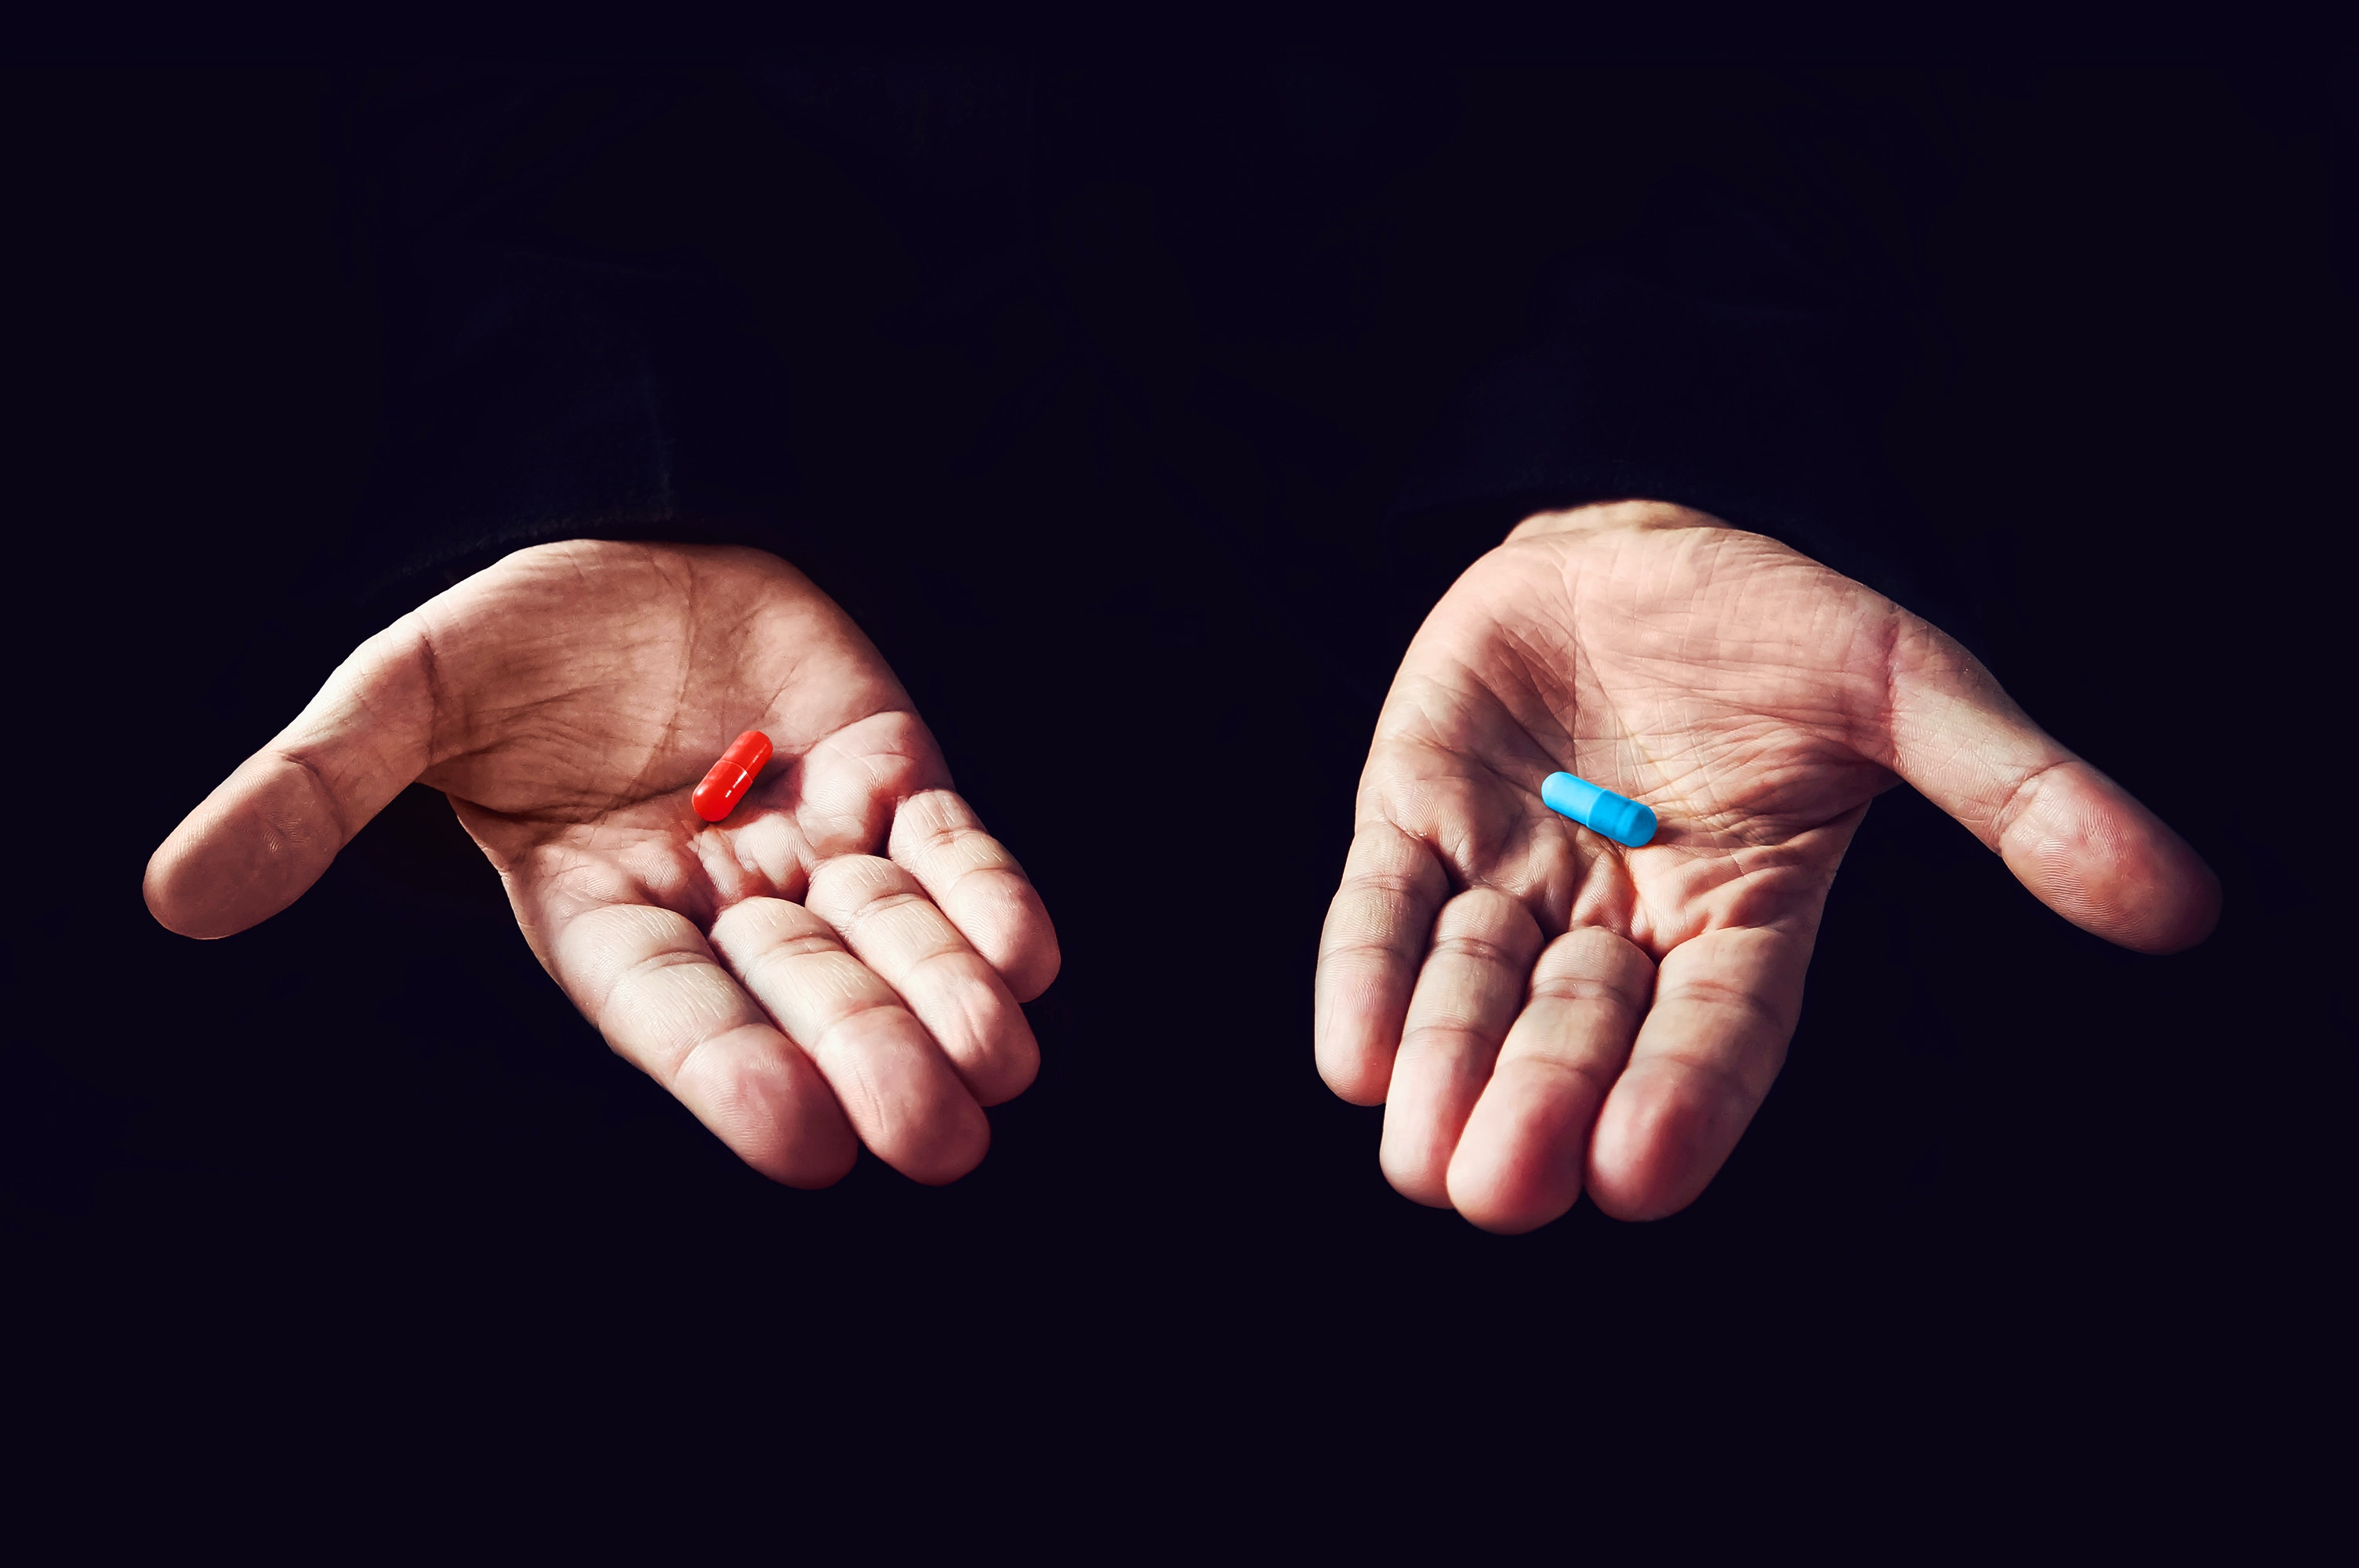 The red pill or the blue pill: Endless consumption or sustainable future?